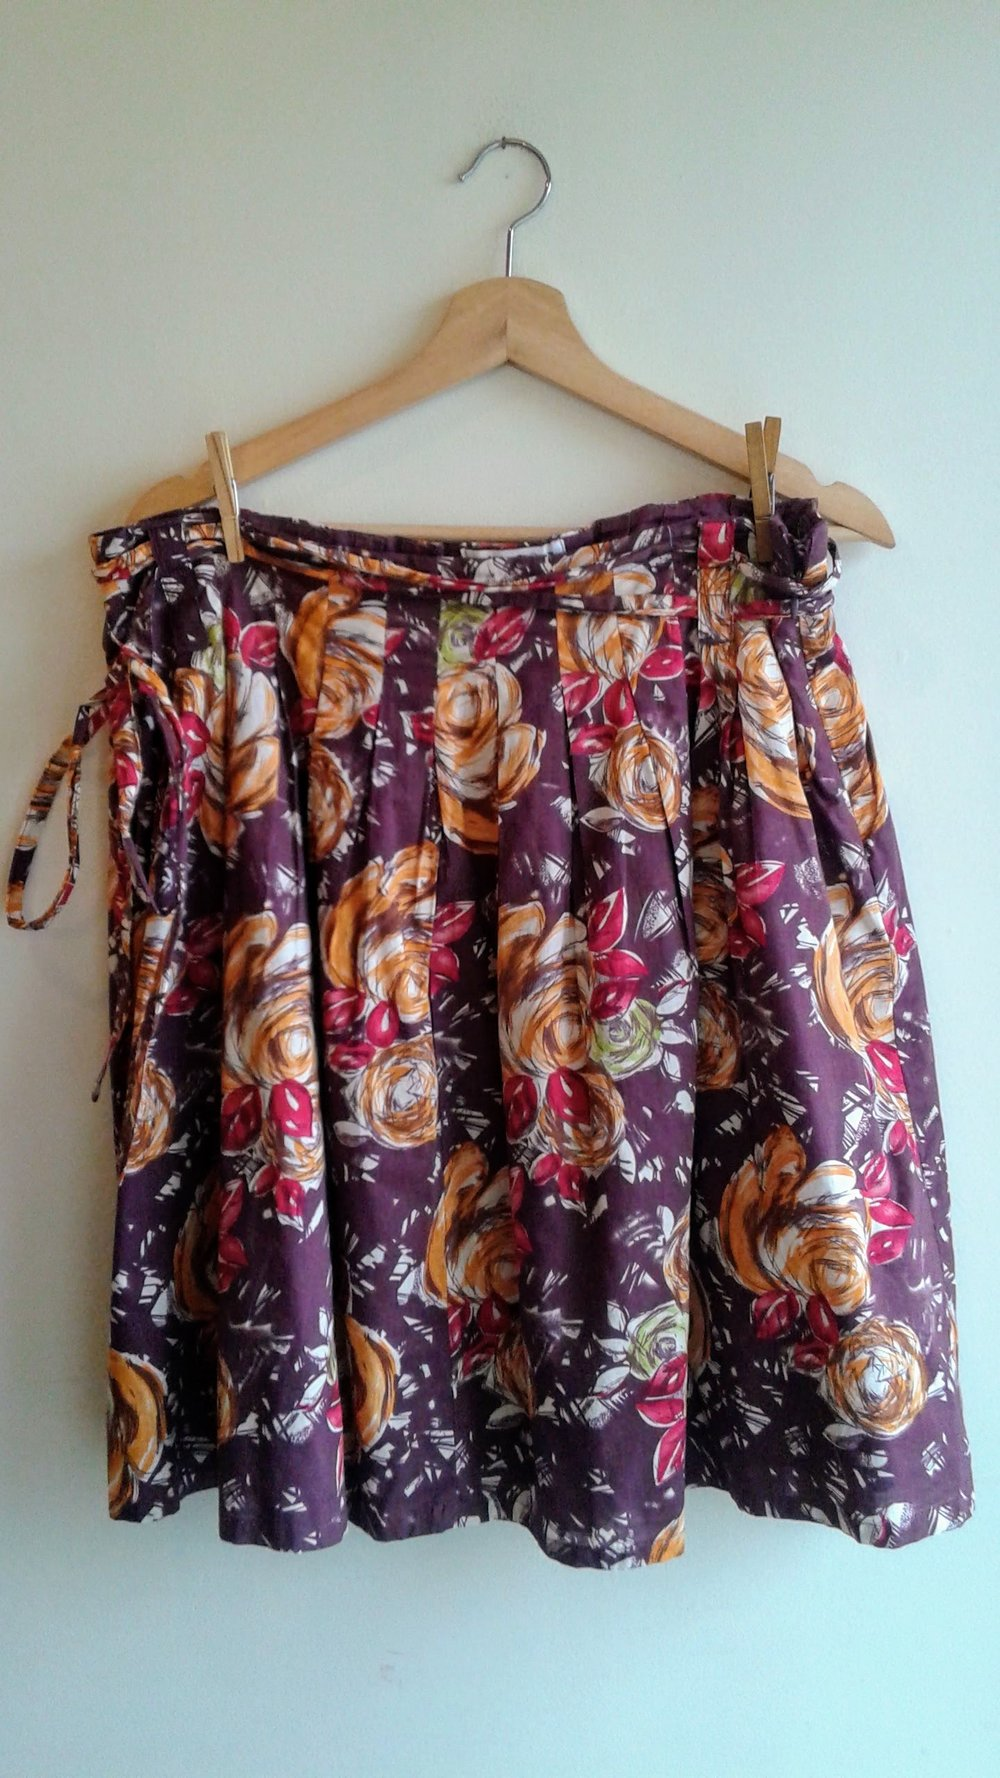 Floral skirt; Size 16, $26